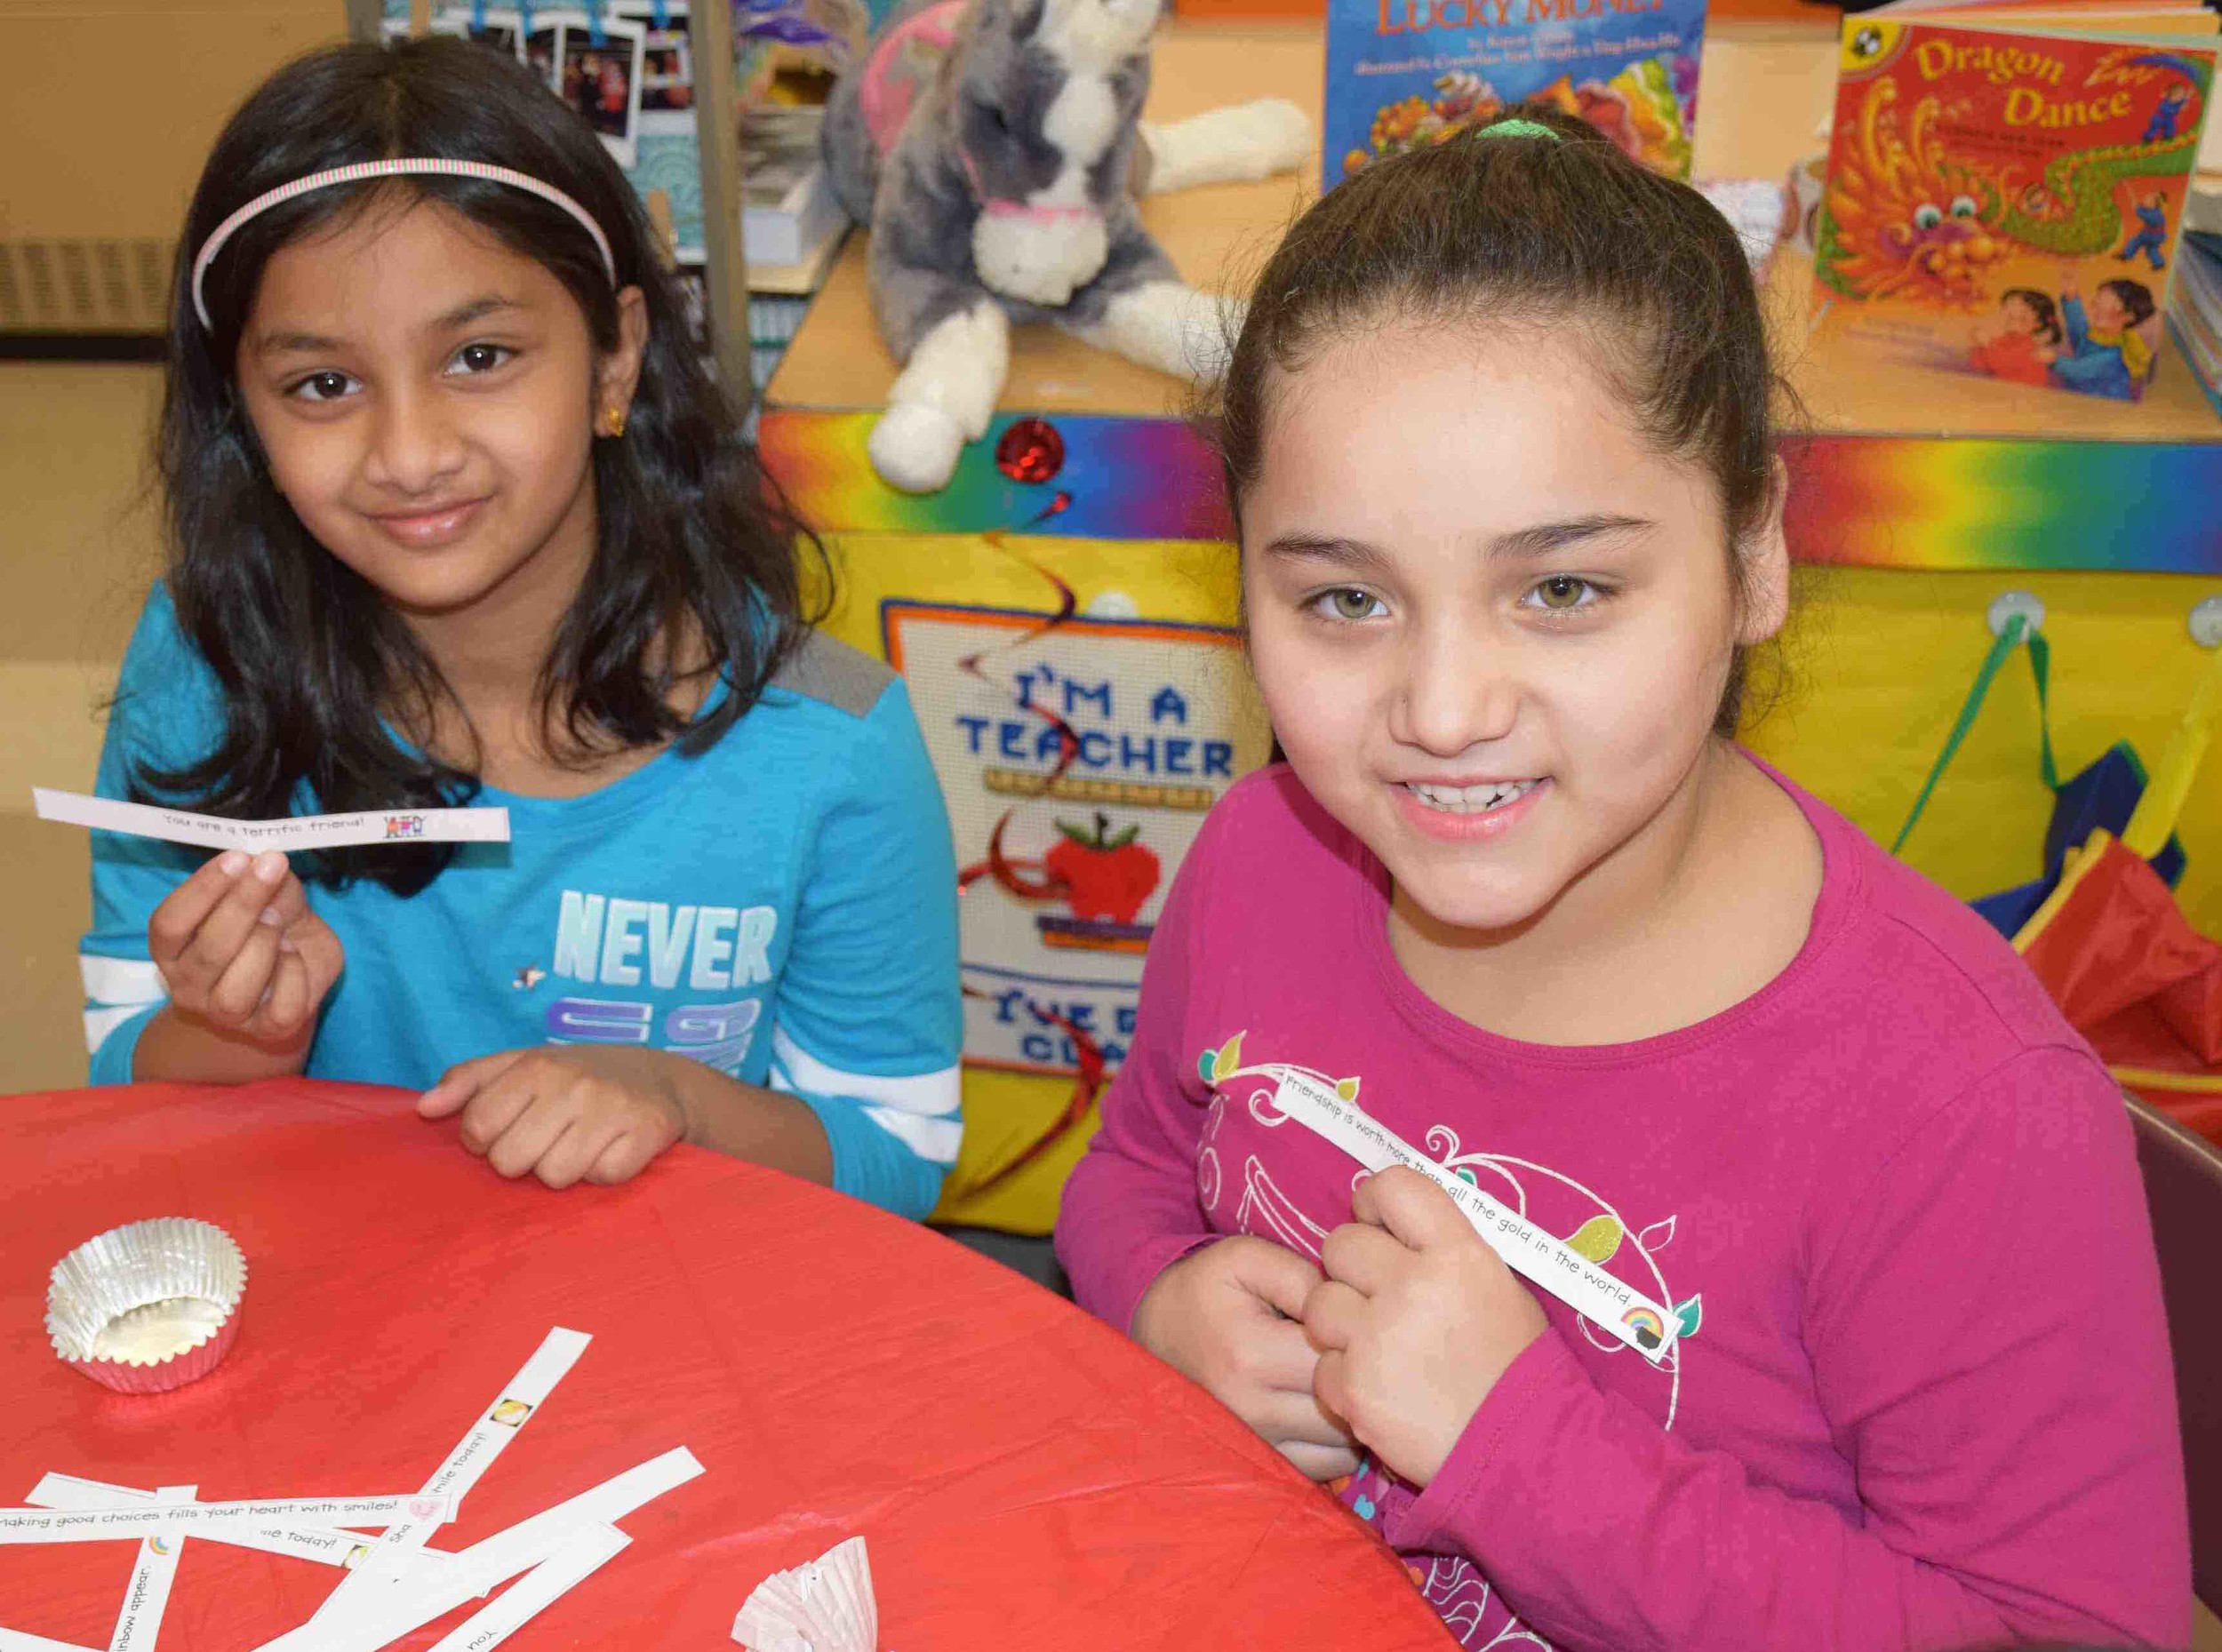 Meadowbrook Elementary School second-graders Liana Boby and Stephanie Hunyh created red envelopes containing lucky money.